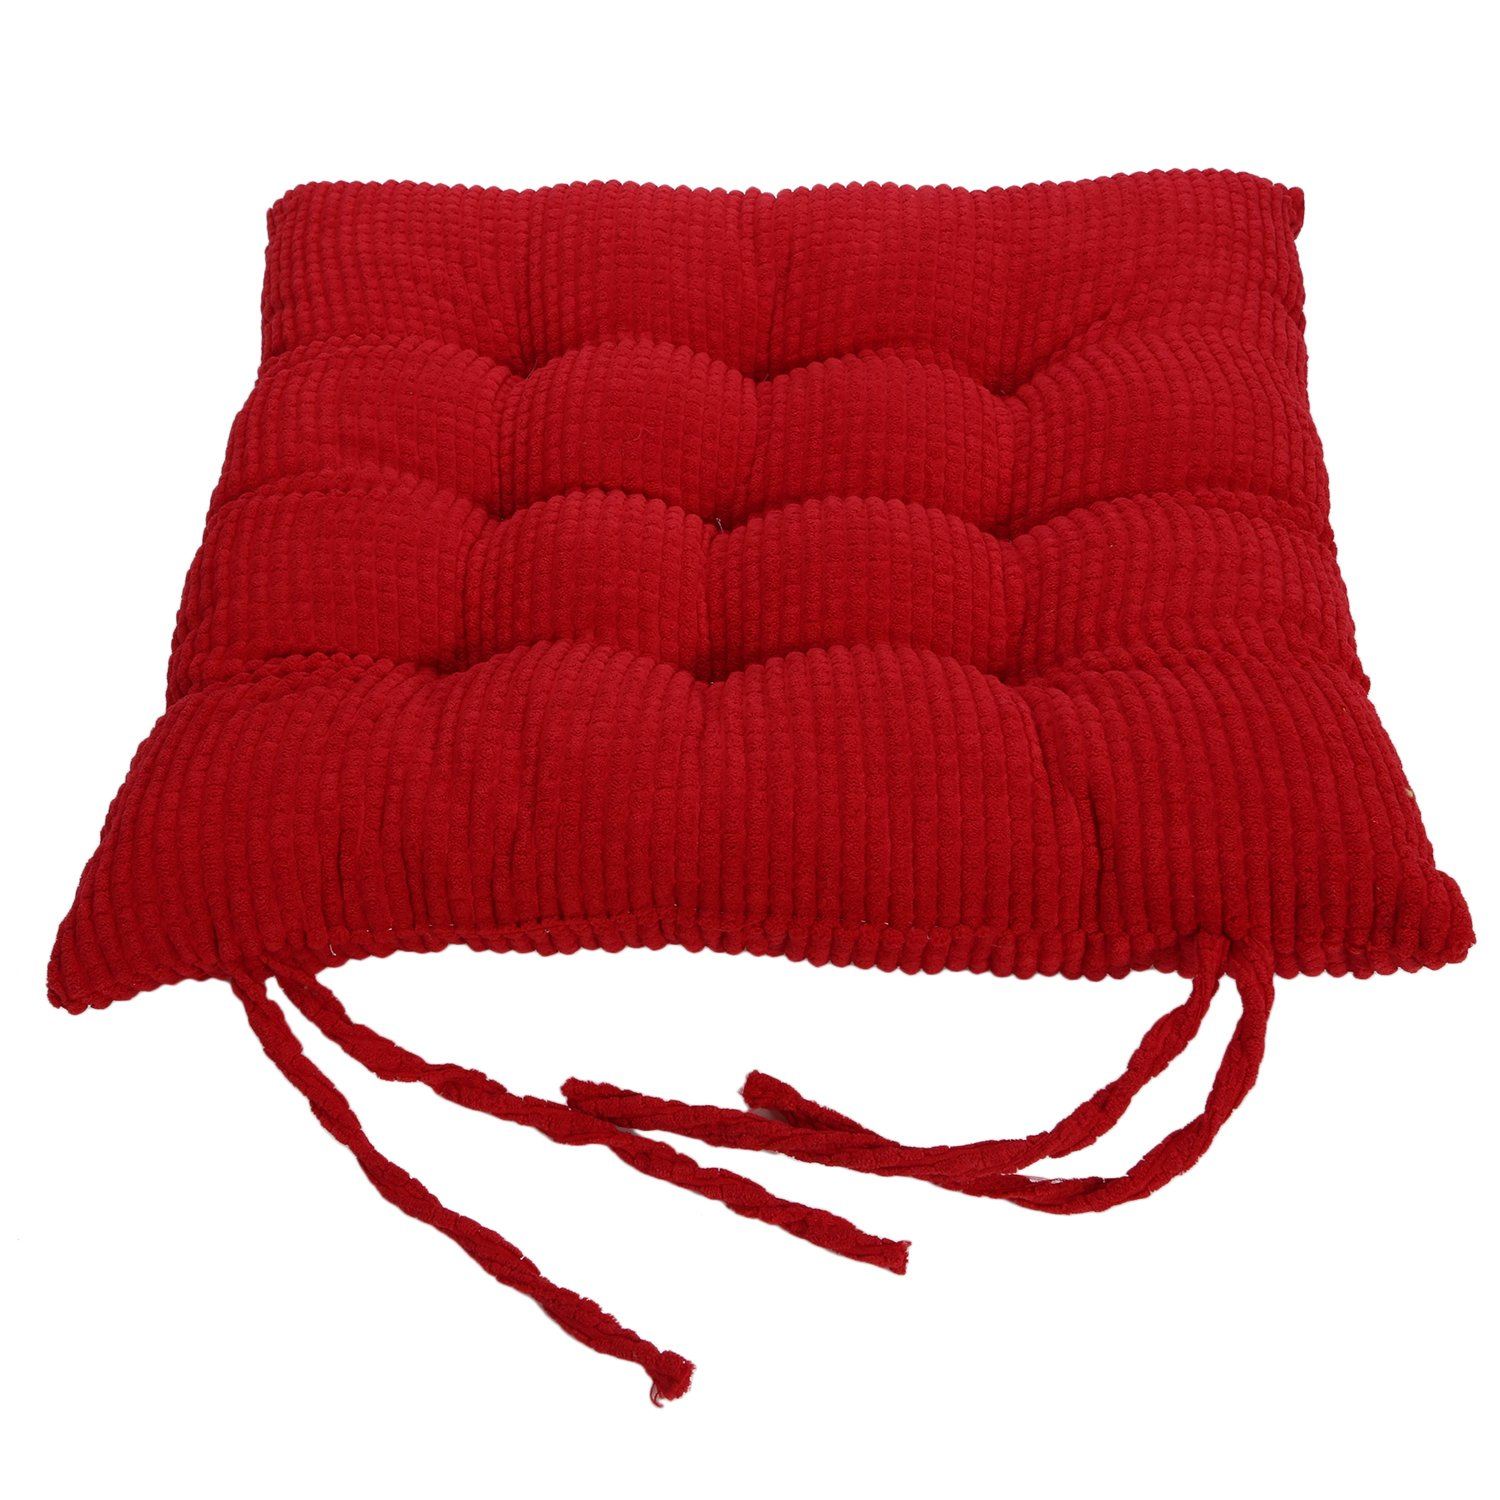 Corduroy Chair Pad - TKOOFN Expandable Polyethylene (EPE) Stuffed Seat Cushion [13.7x13.7inch] Square Chair Cushion for Home Furniture & Decor (package of 1, Coffee) FBA_A15013570